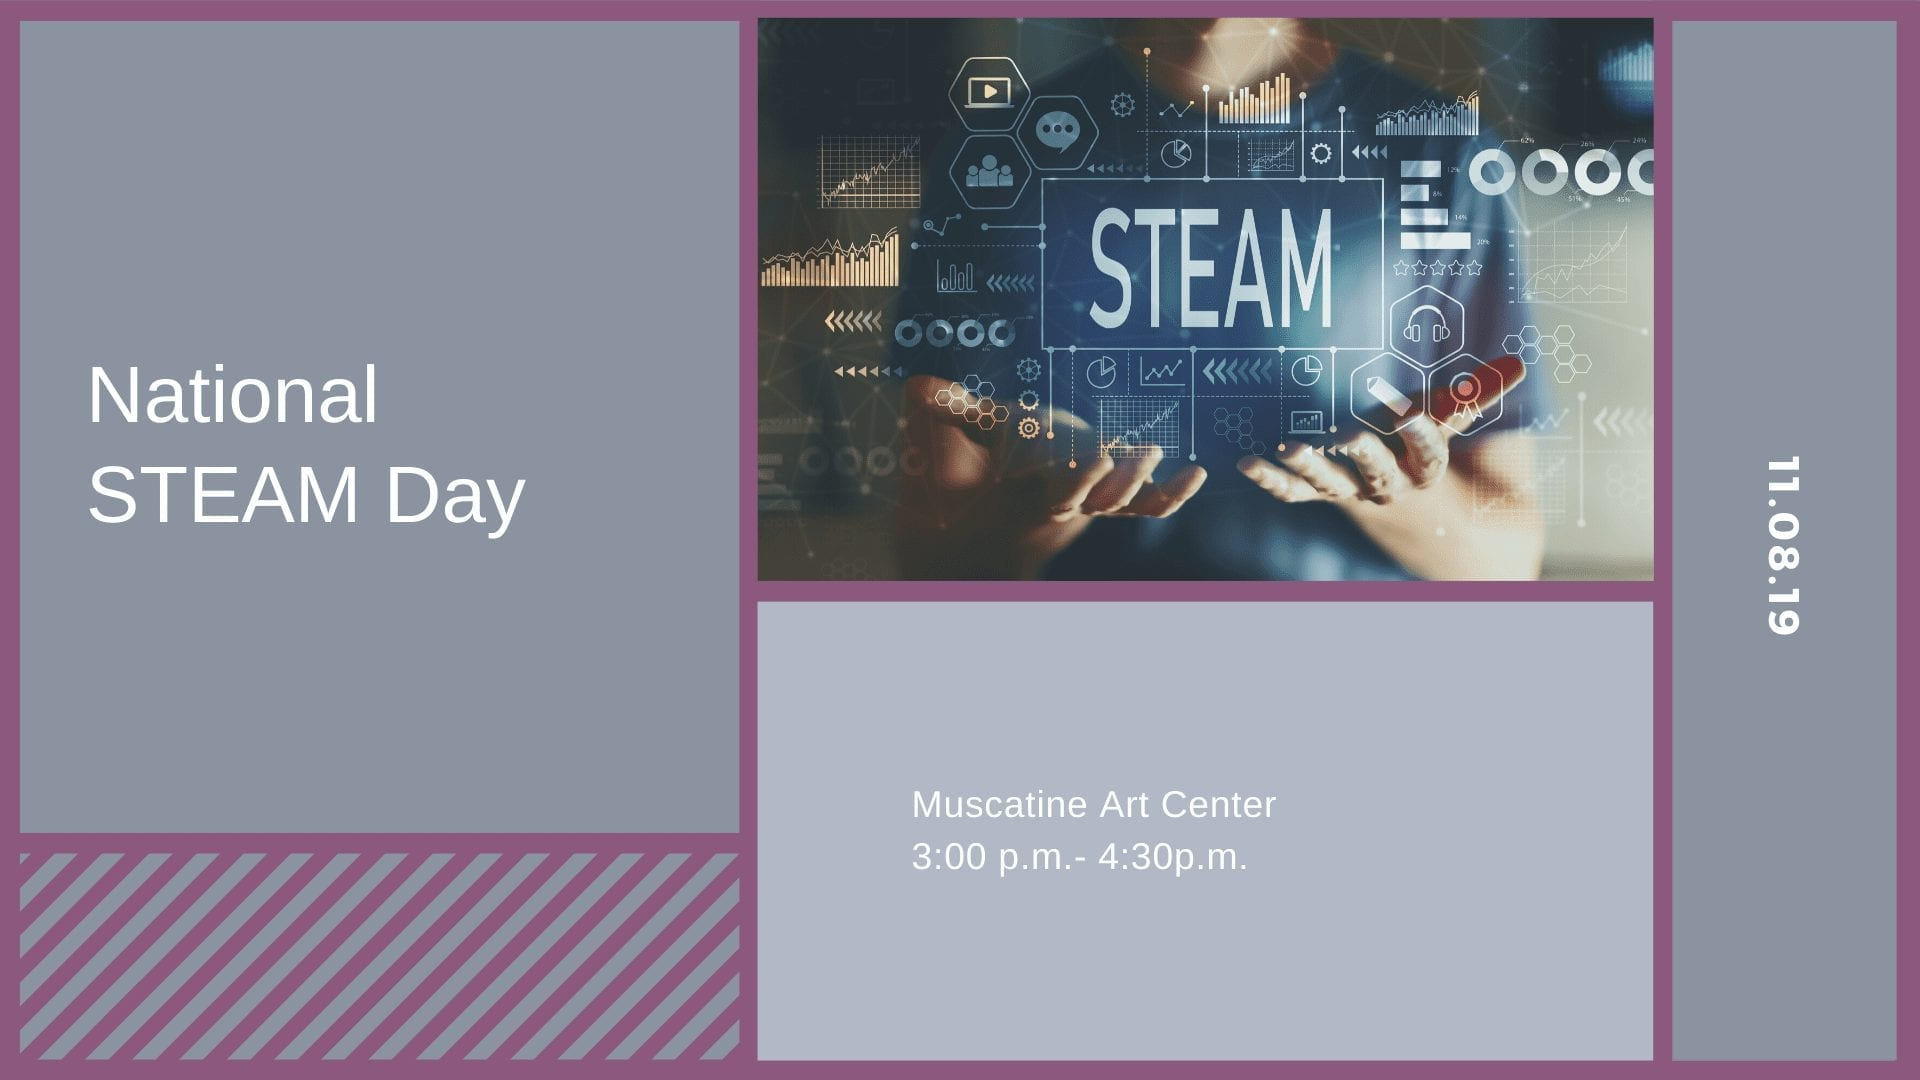 National STEAM Day